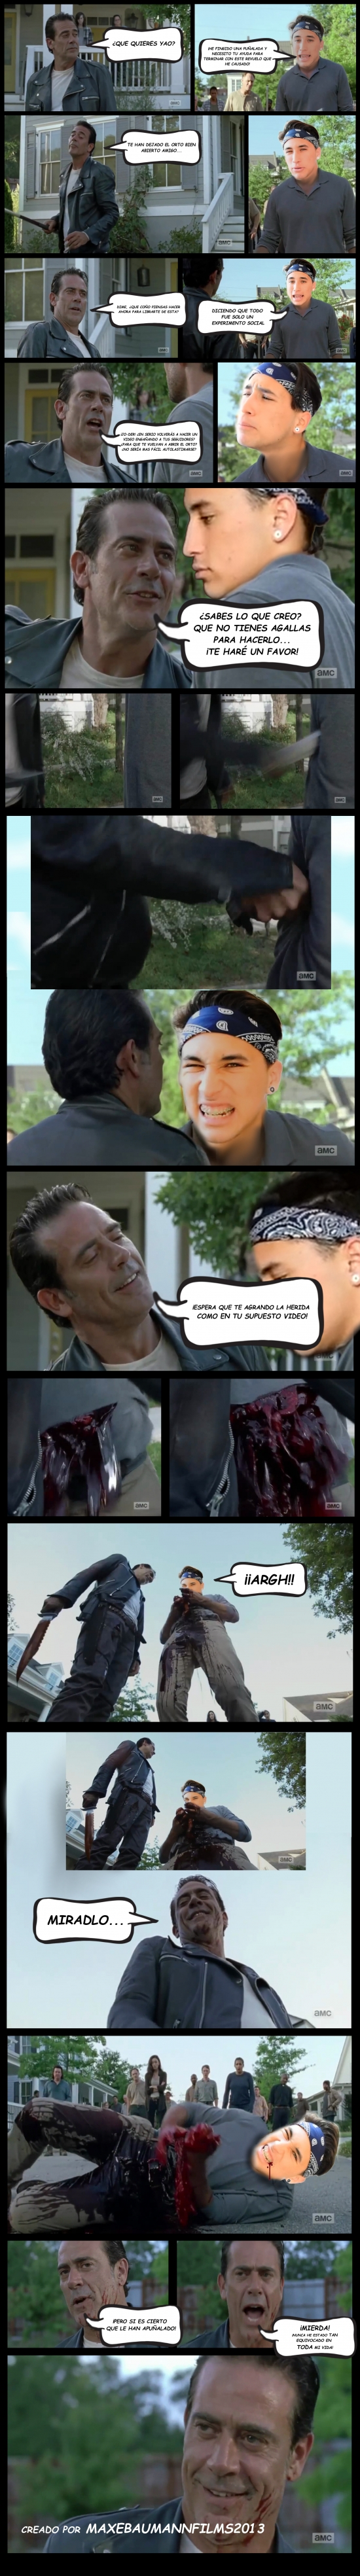 Lol - El encuentro entre Yao Cabrera y Negan (The Walking Dead)